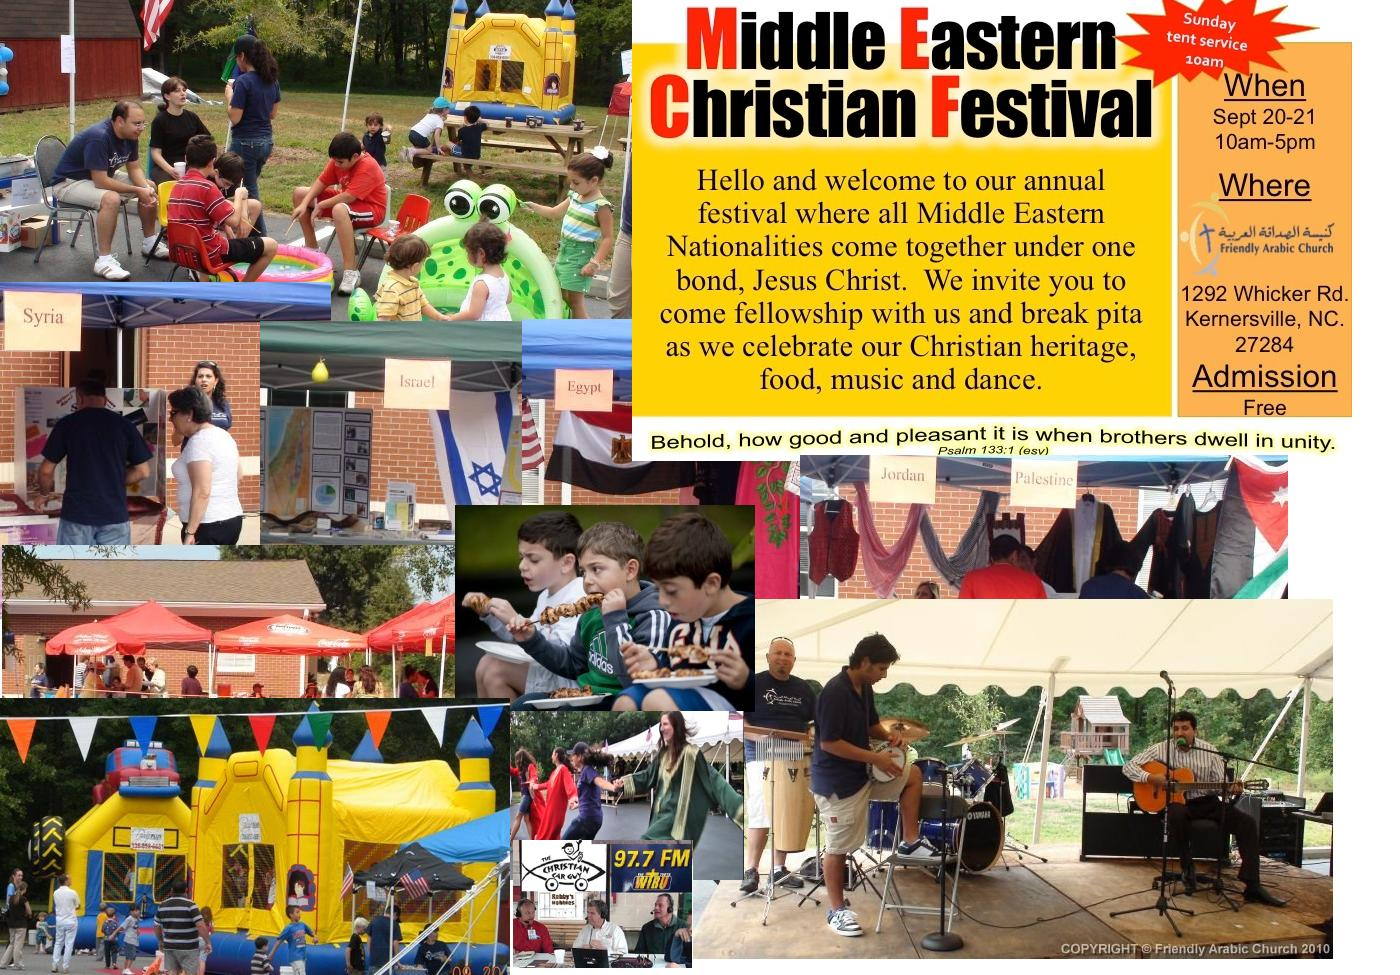 """Live Today From Middle Eastern Christian Festival """"Kernersville, NC"""""""